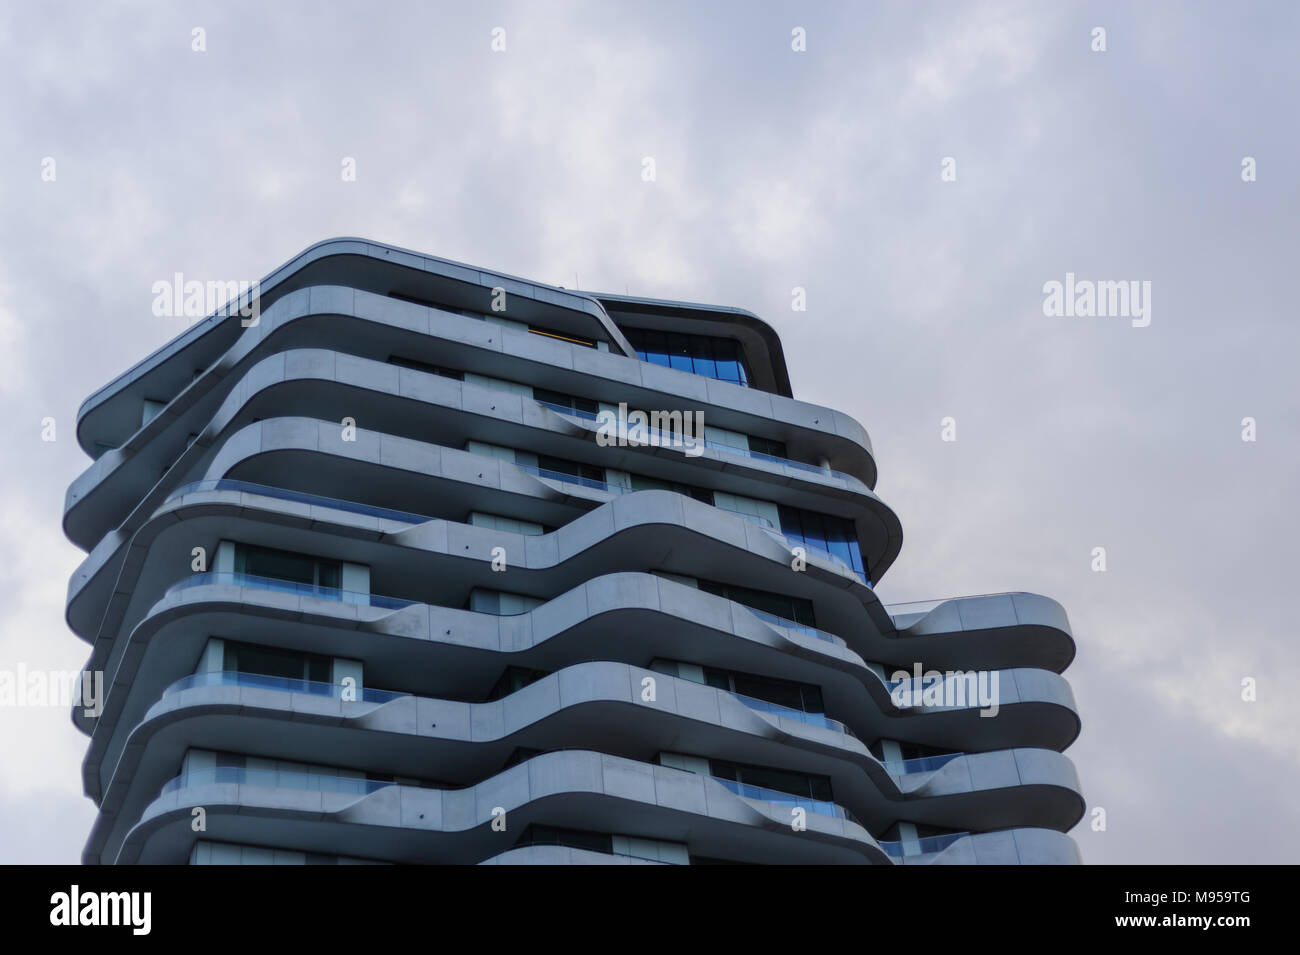 Upper part of Marco Polo Tower at daylight with blue tint. - Stock Image